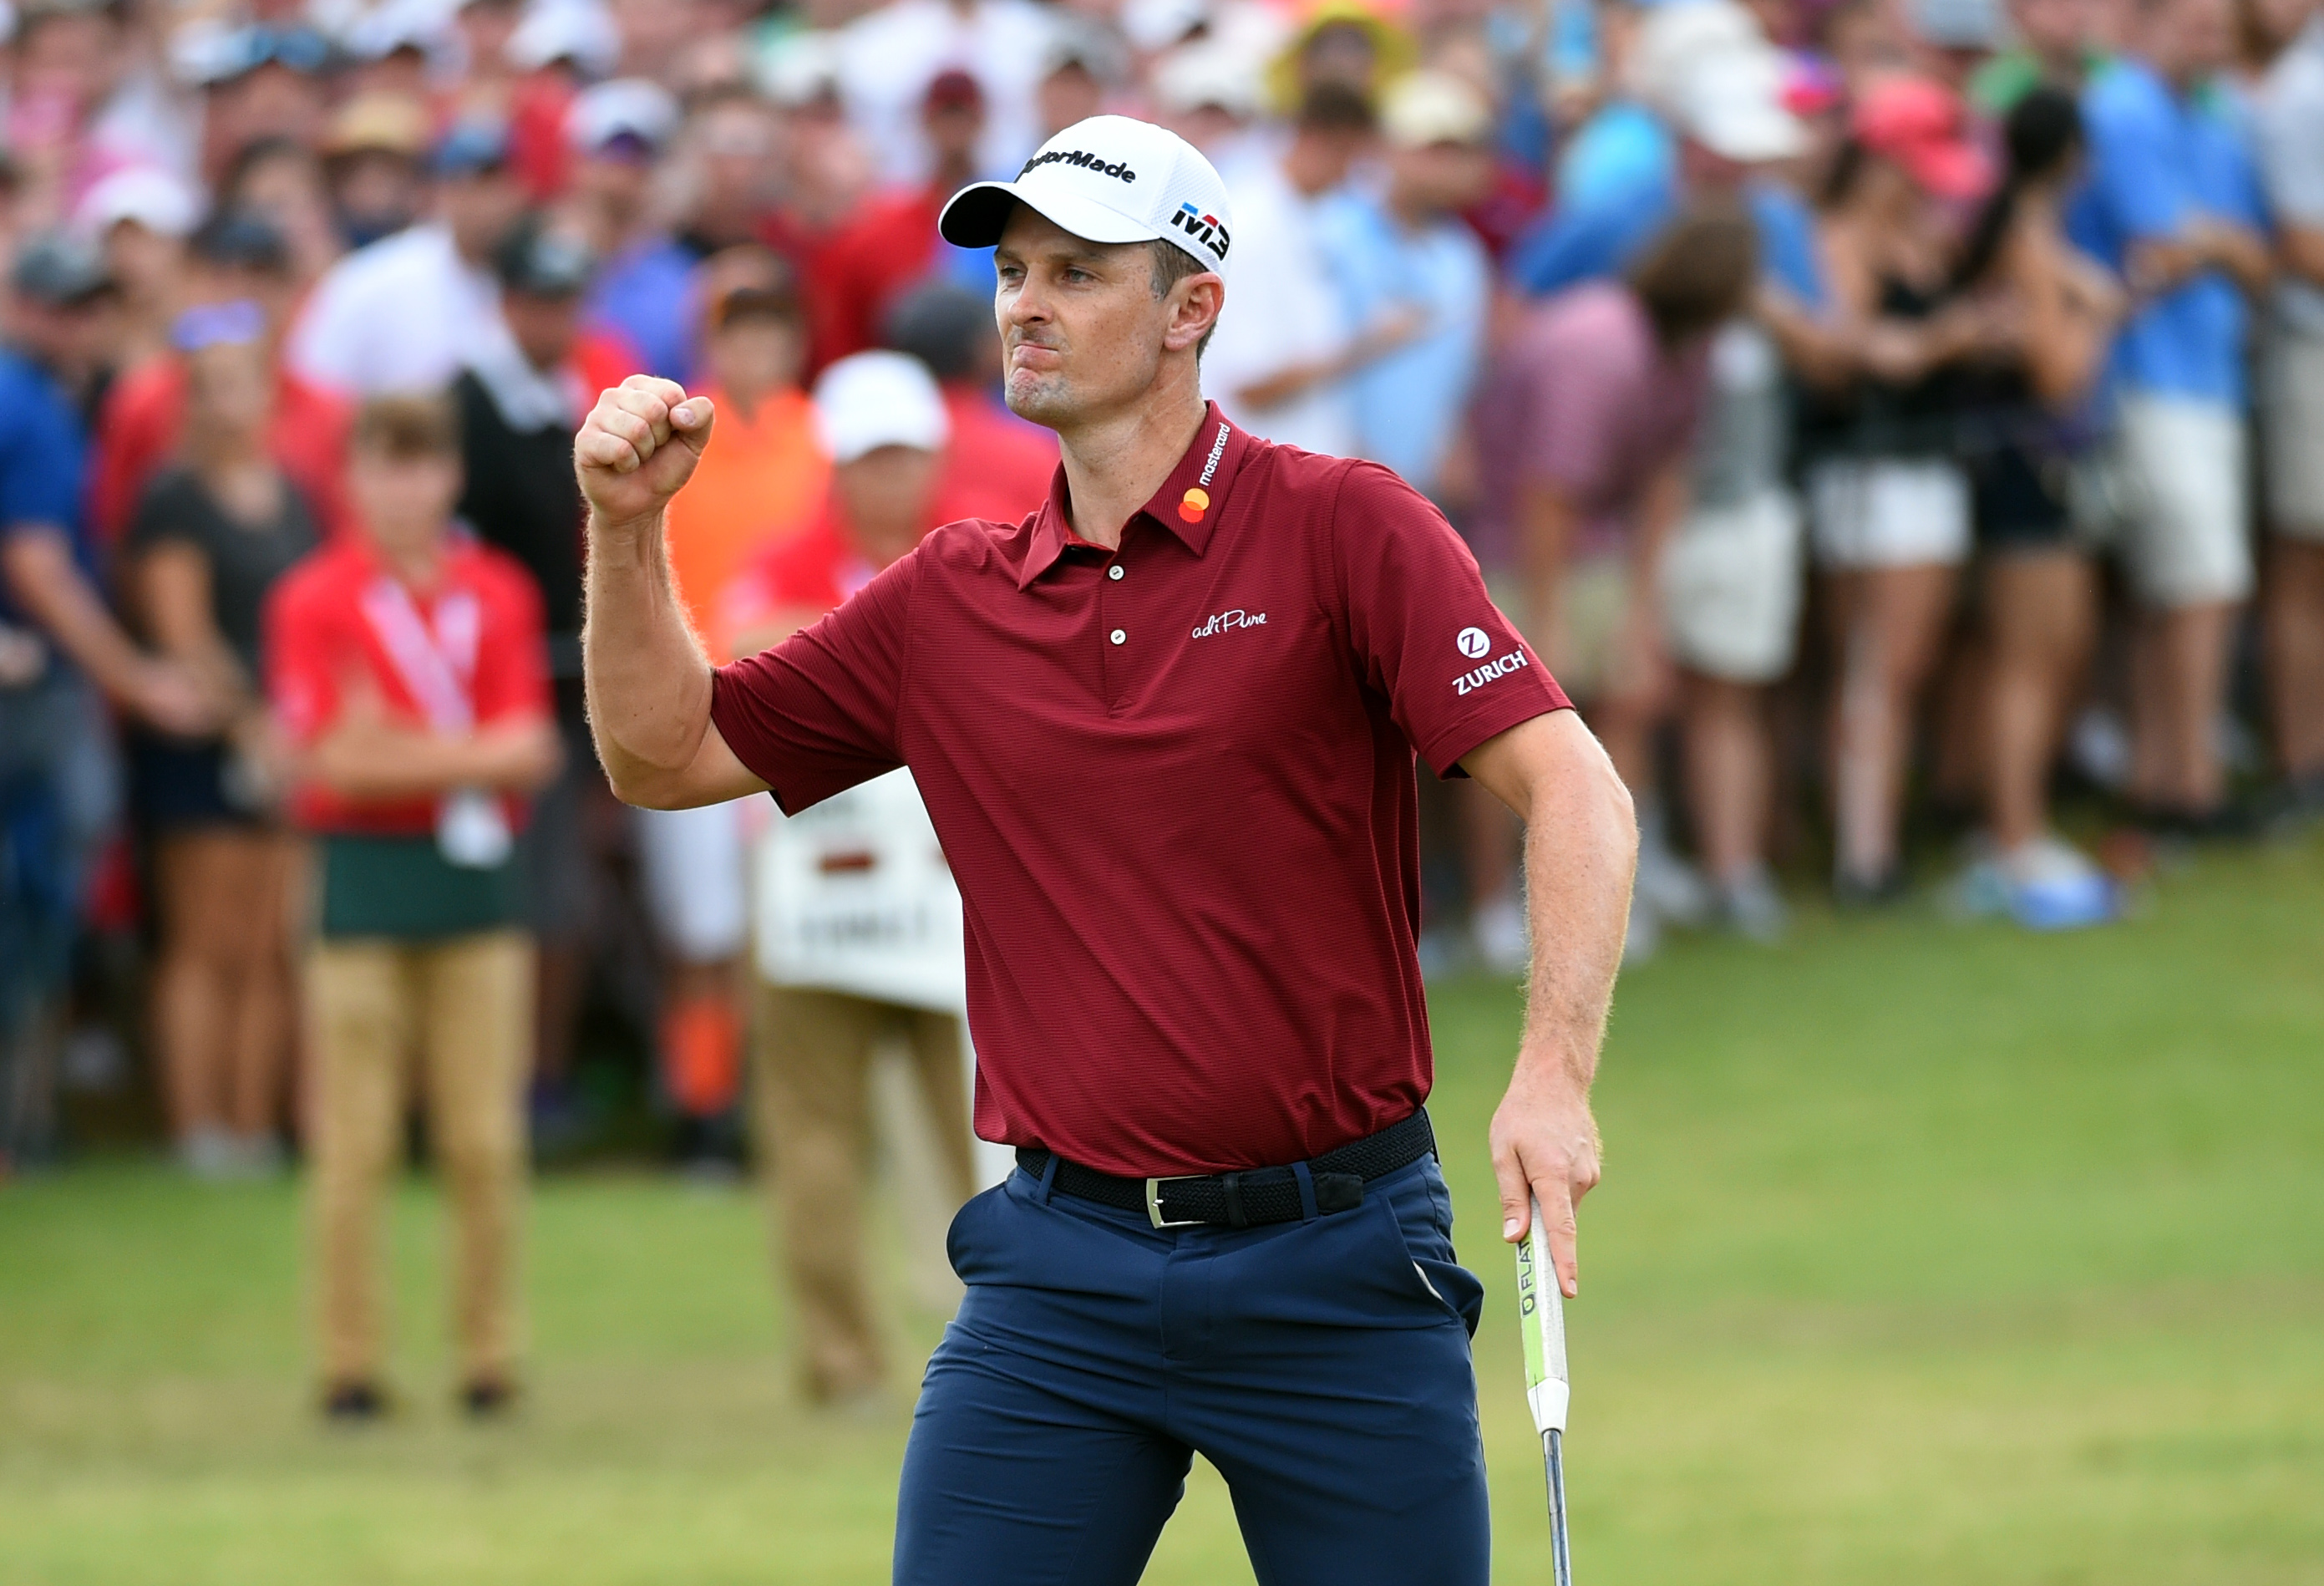 Sep 23, 2018; Atlanta, GA, USA; Justin Rose reacts when he is one putt away from winning the FedEx Cup during the final round of the Tour Championship golf tournament at East Lake Golf Club. Mandatory Credit: John David Mercer-USA TODAY Sports